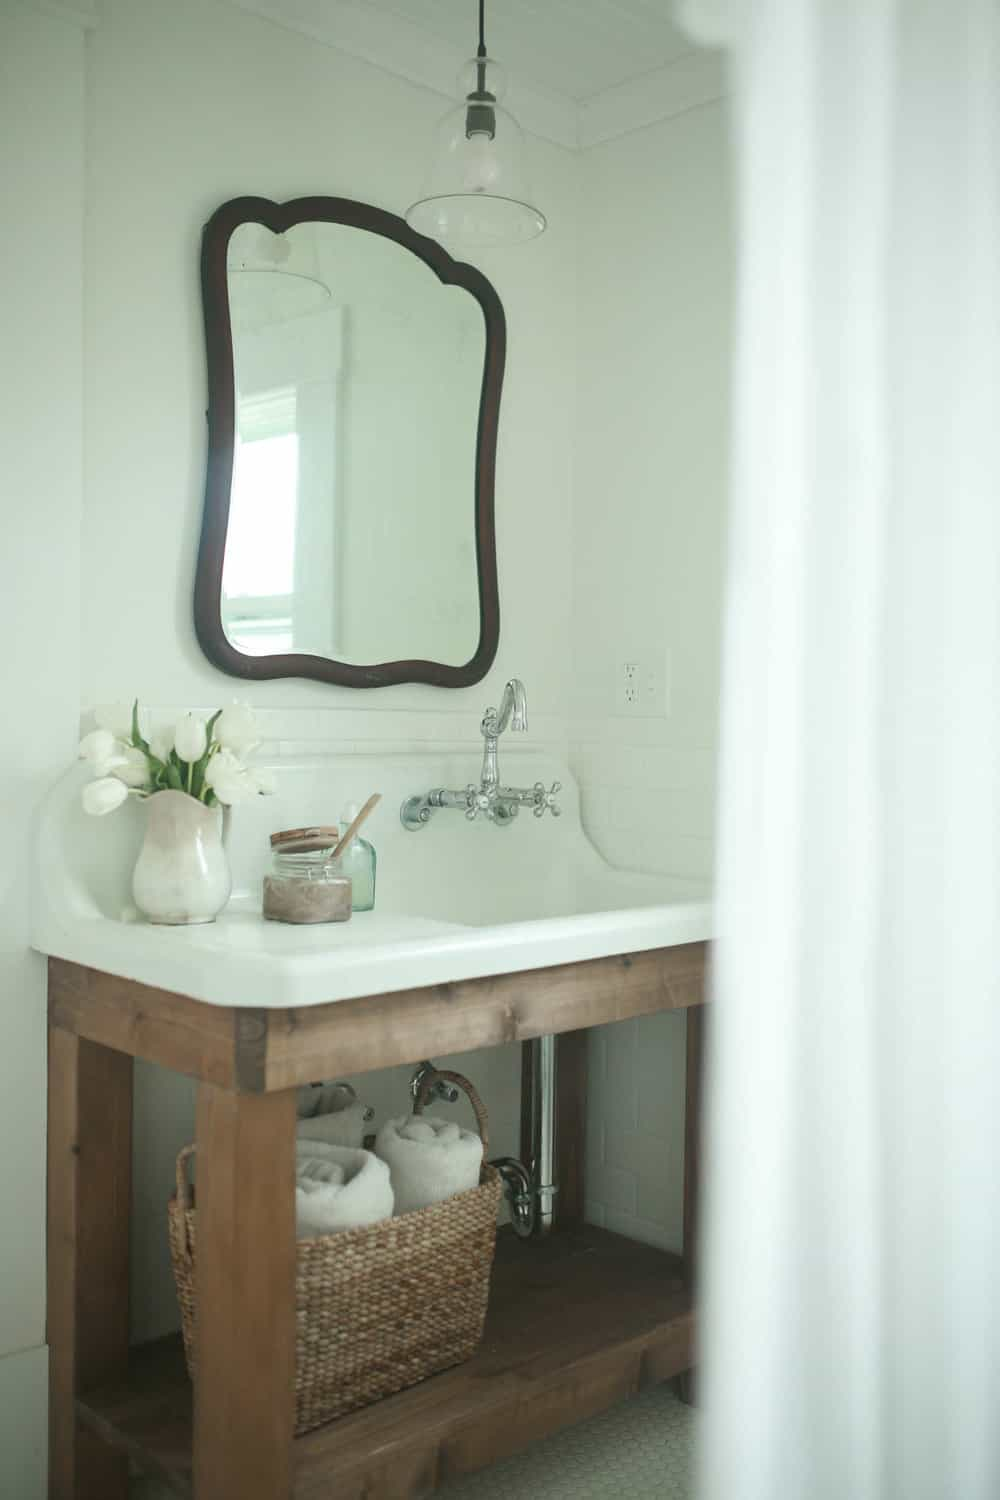 My Favorite Part Of This Whole Remodel Has To Be The New Sink And Vanity!